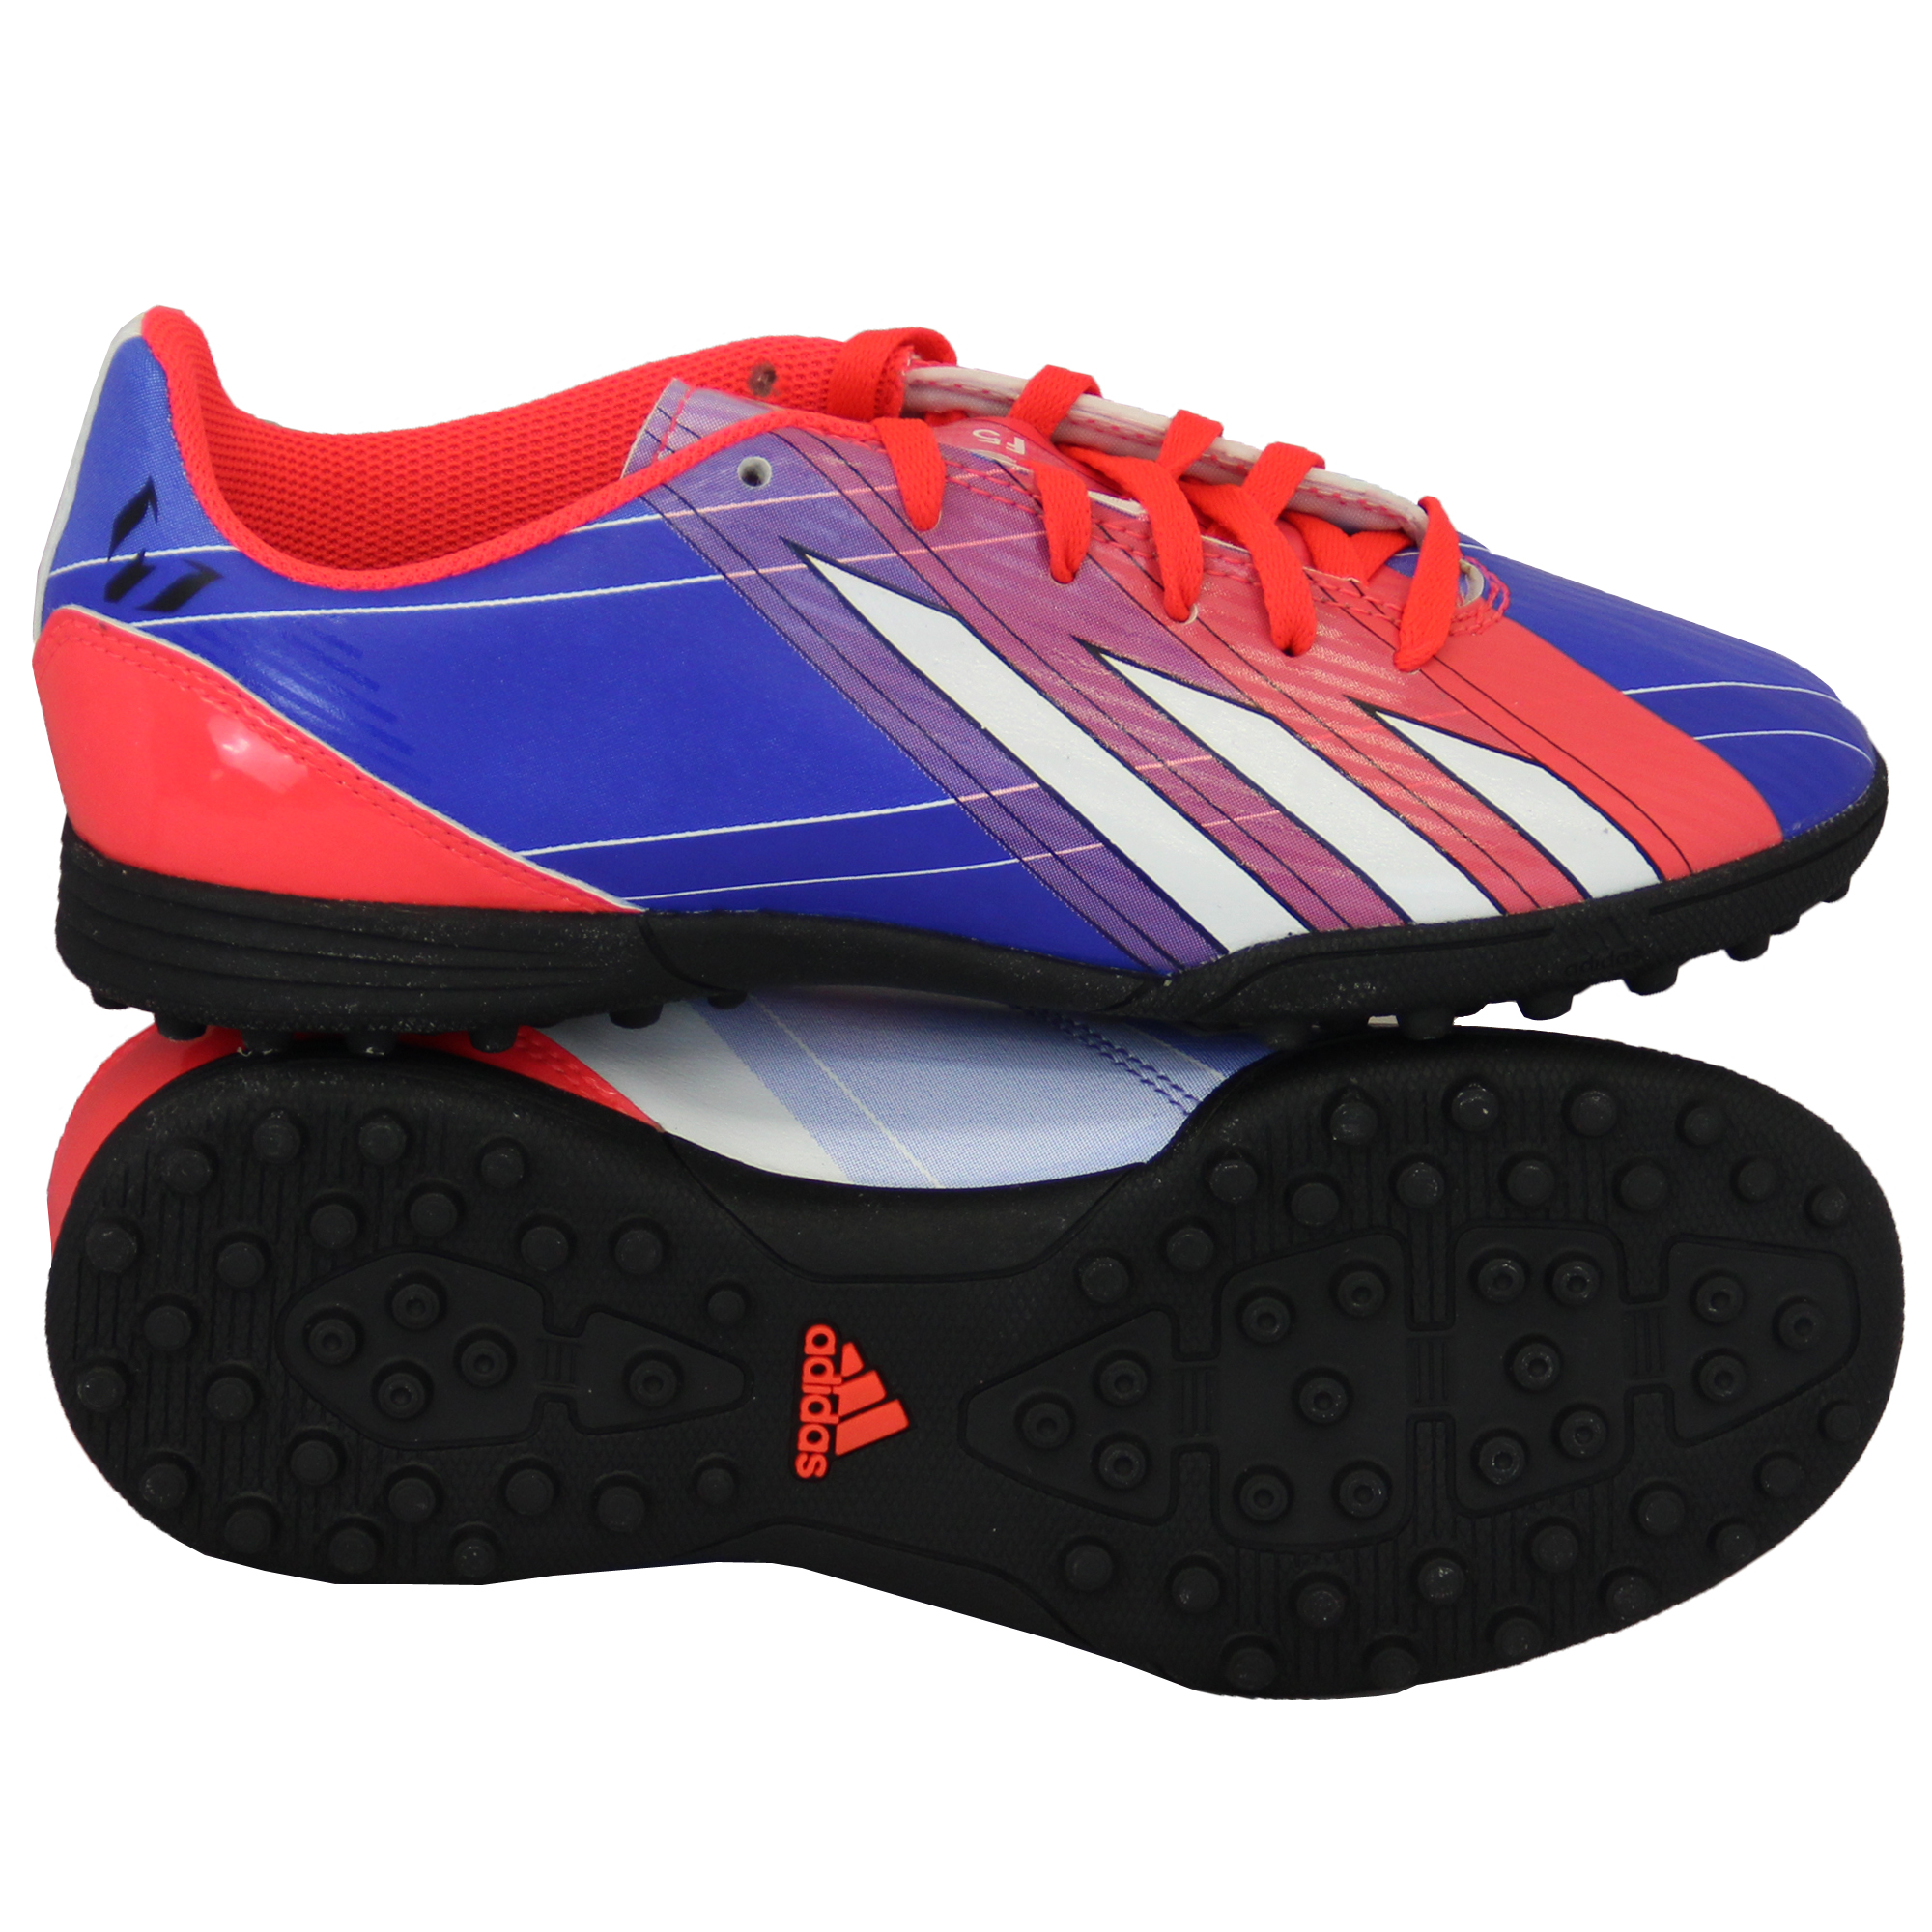 Blue And Orange Adidas X Soccer Shoes For Turf